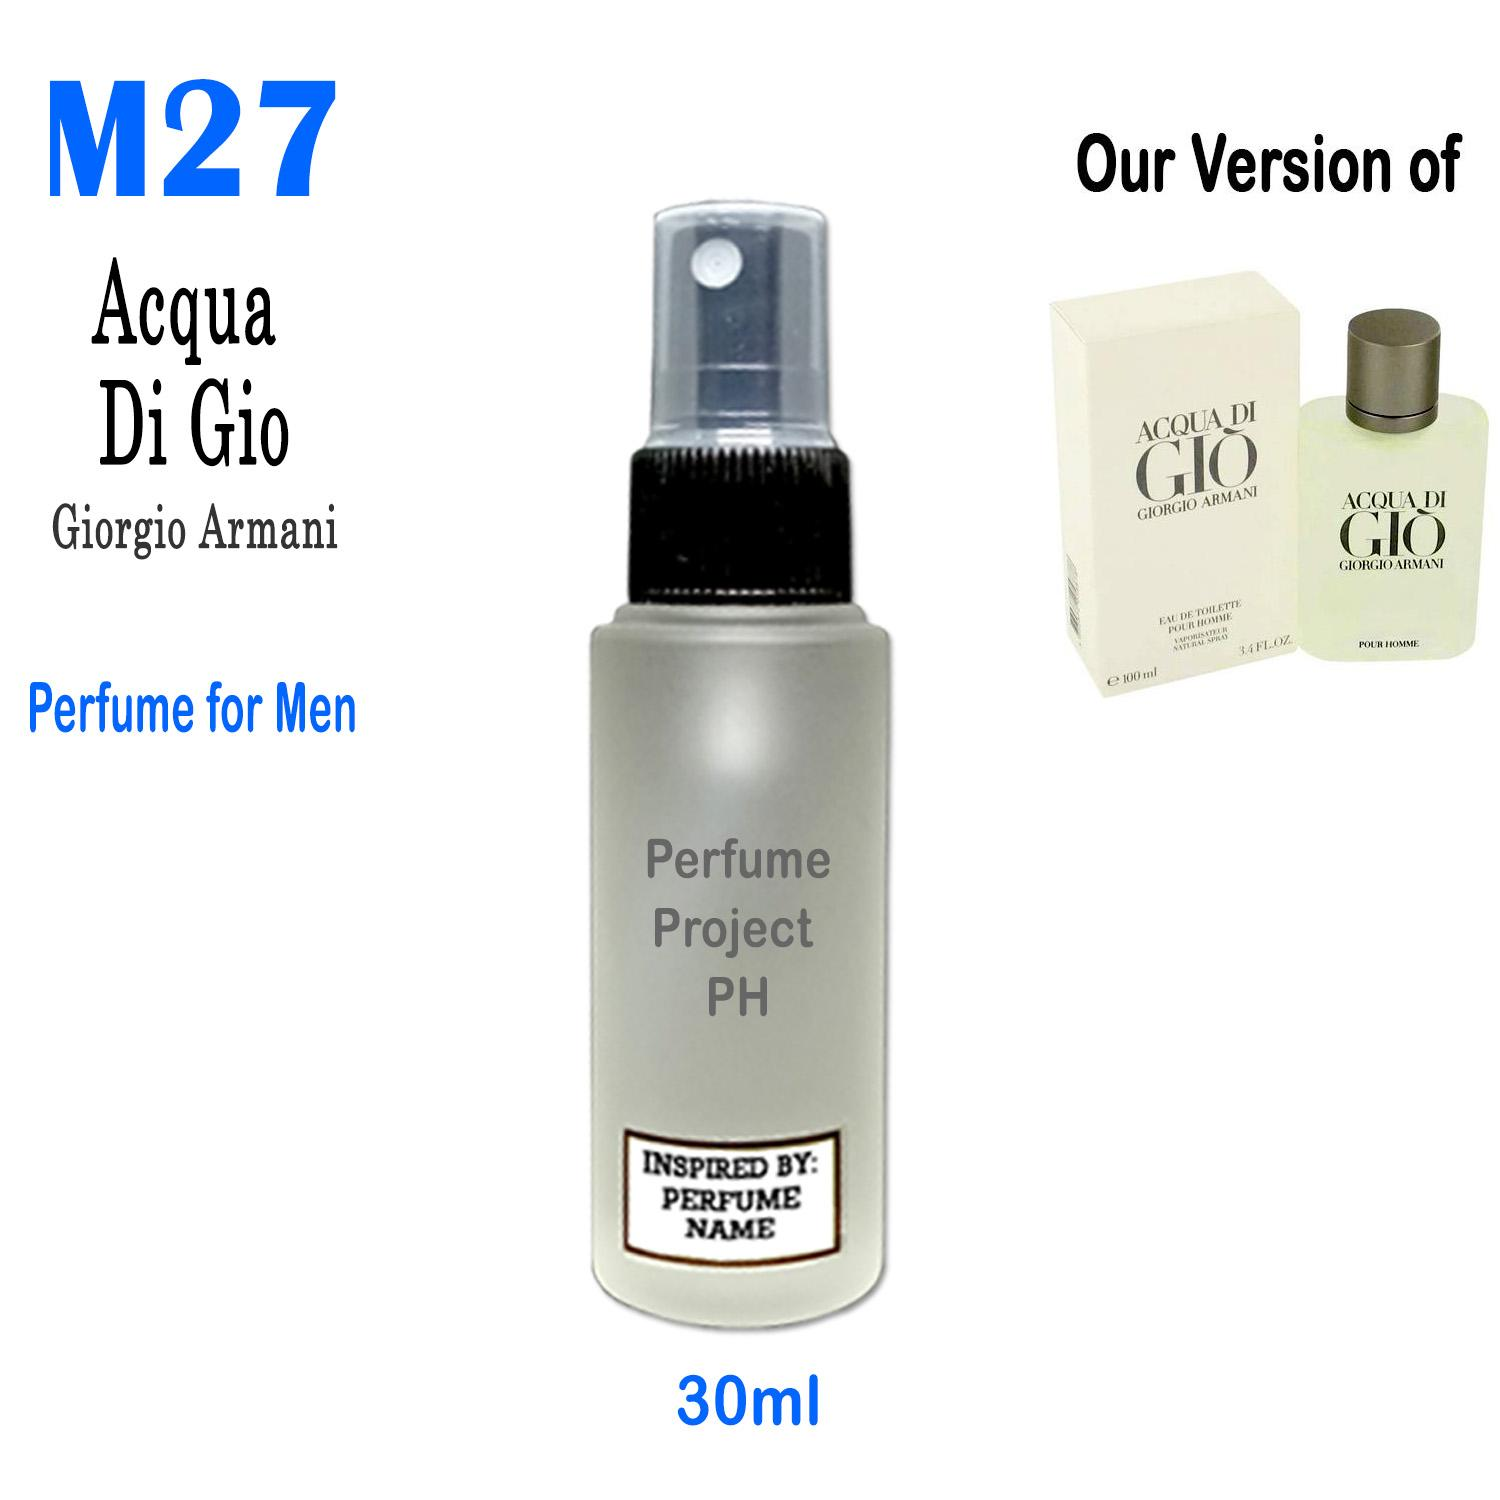 Buy Sell Cheapest Perfume For Men Best Quality Product Deals Parfum Original Adidas Get Ready Project Ph 30ml Round M27 Our Version Of Acqua Di Gio By Giorgio